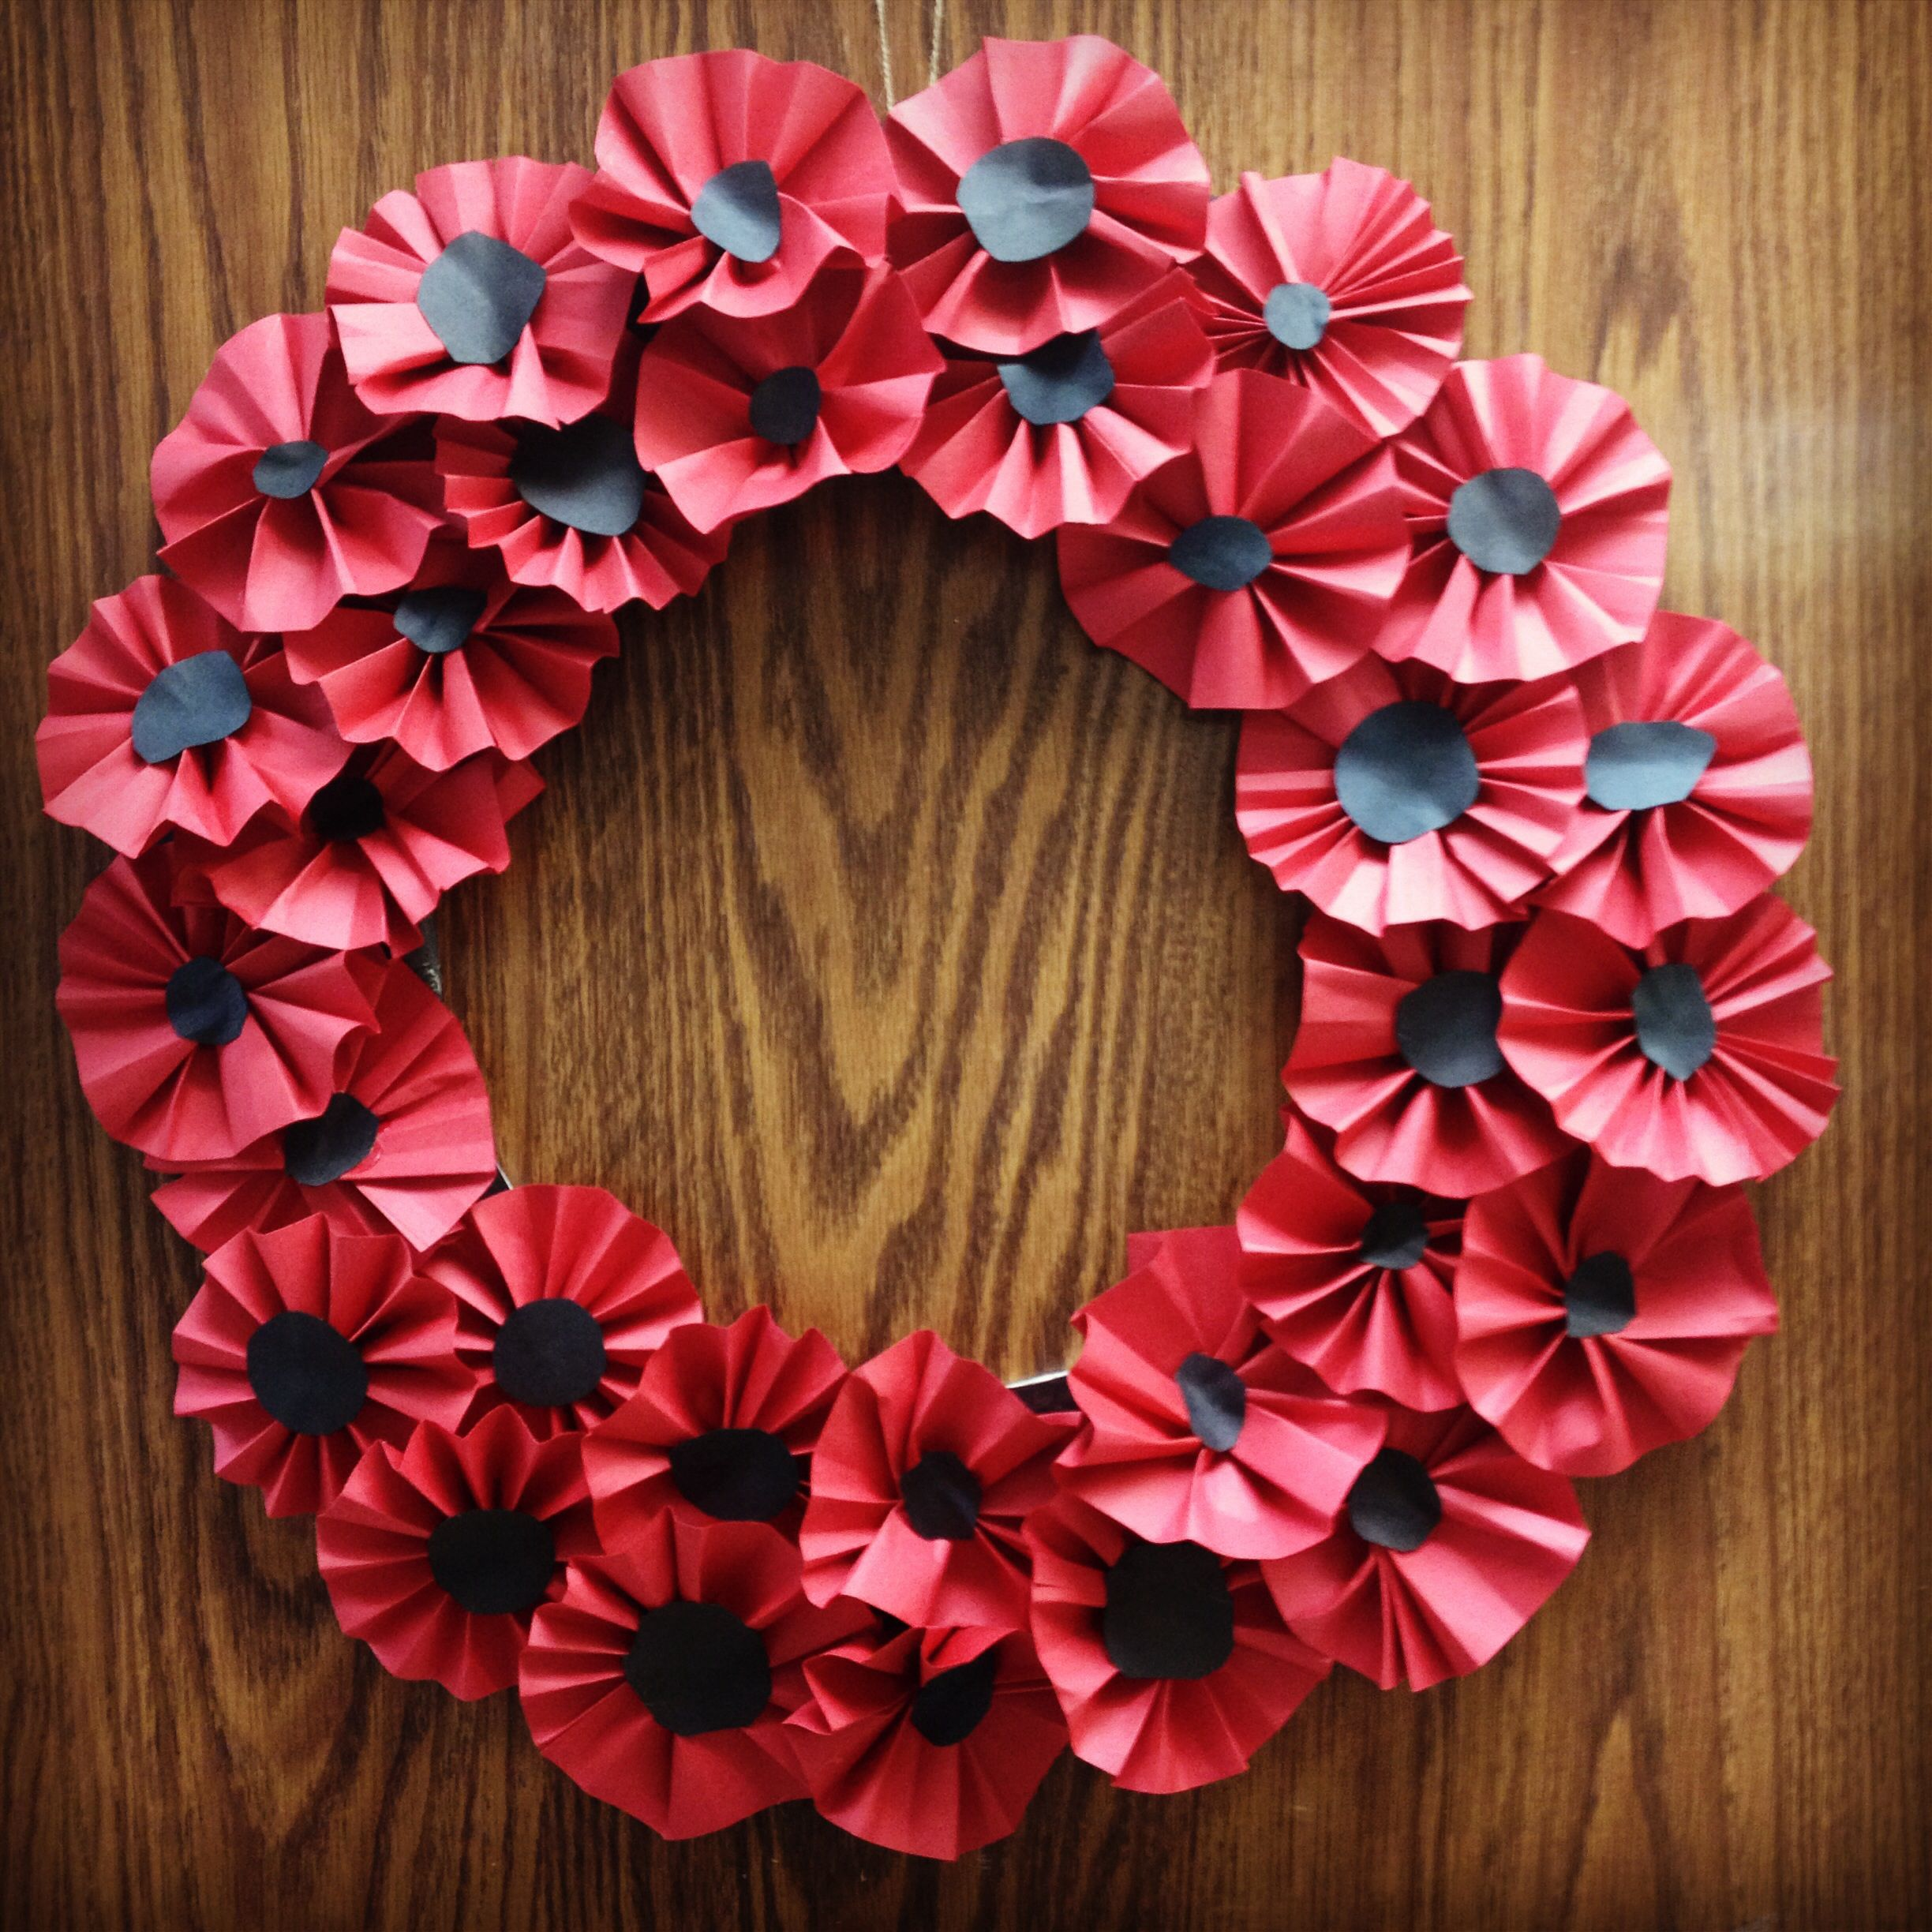 Remembrance day poppy wreath elementary school art project - Remembrance day craft ideas ...